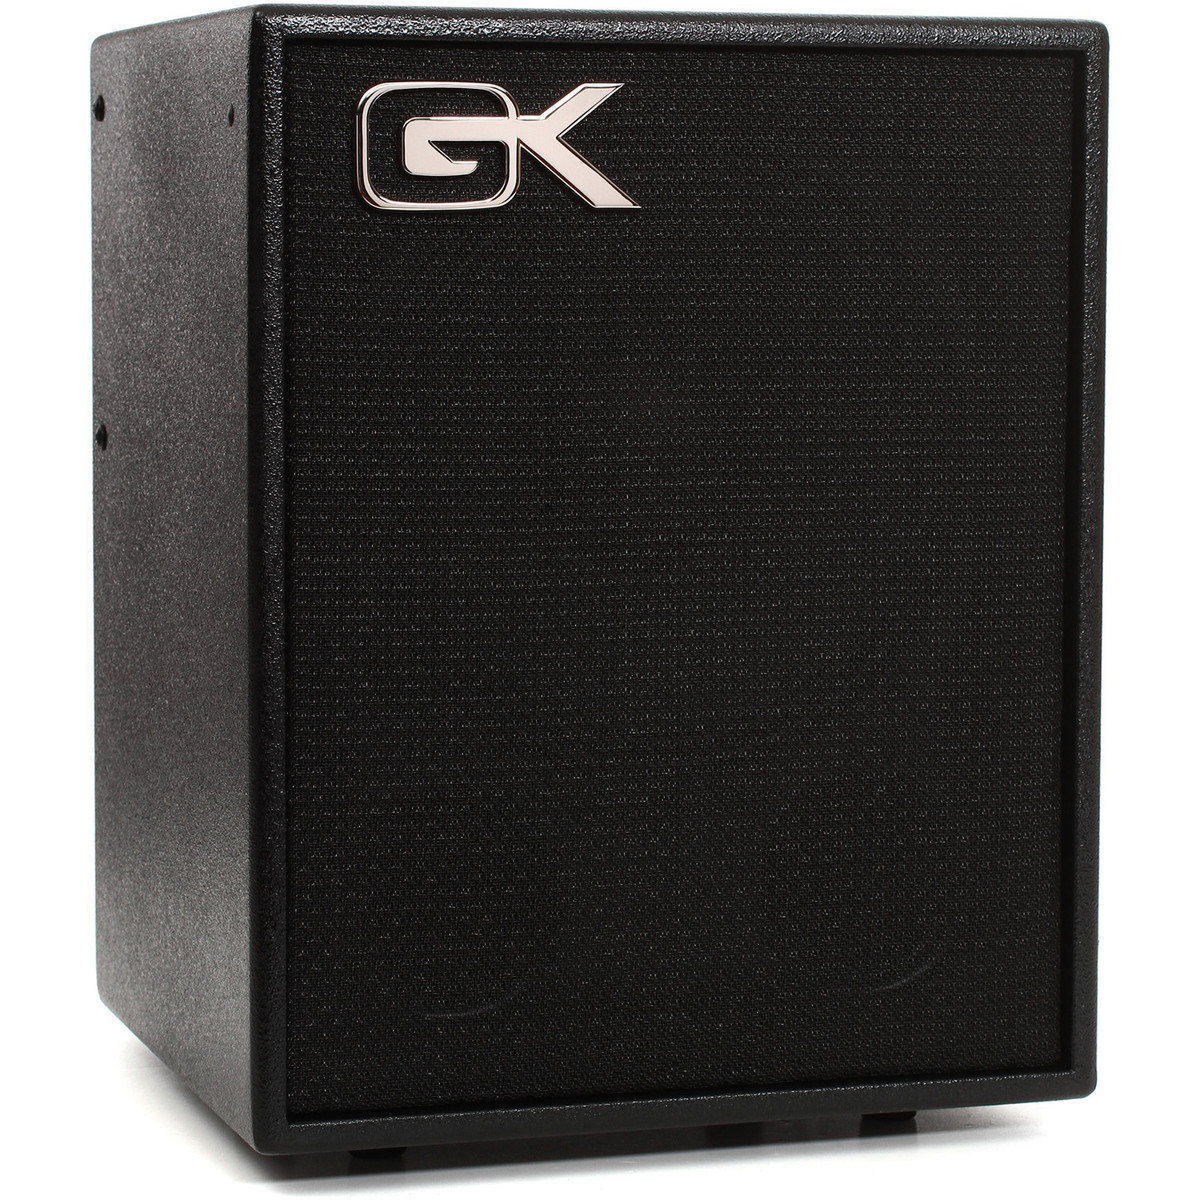 Click to view product details and reviews for Gallien Krueger Mb 110 Lightweight Bass Combo.